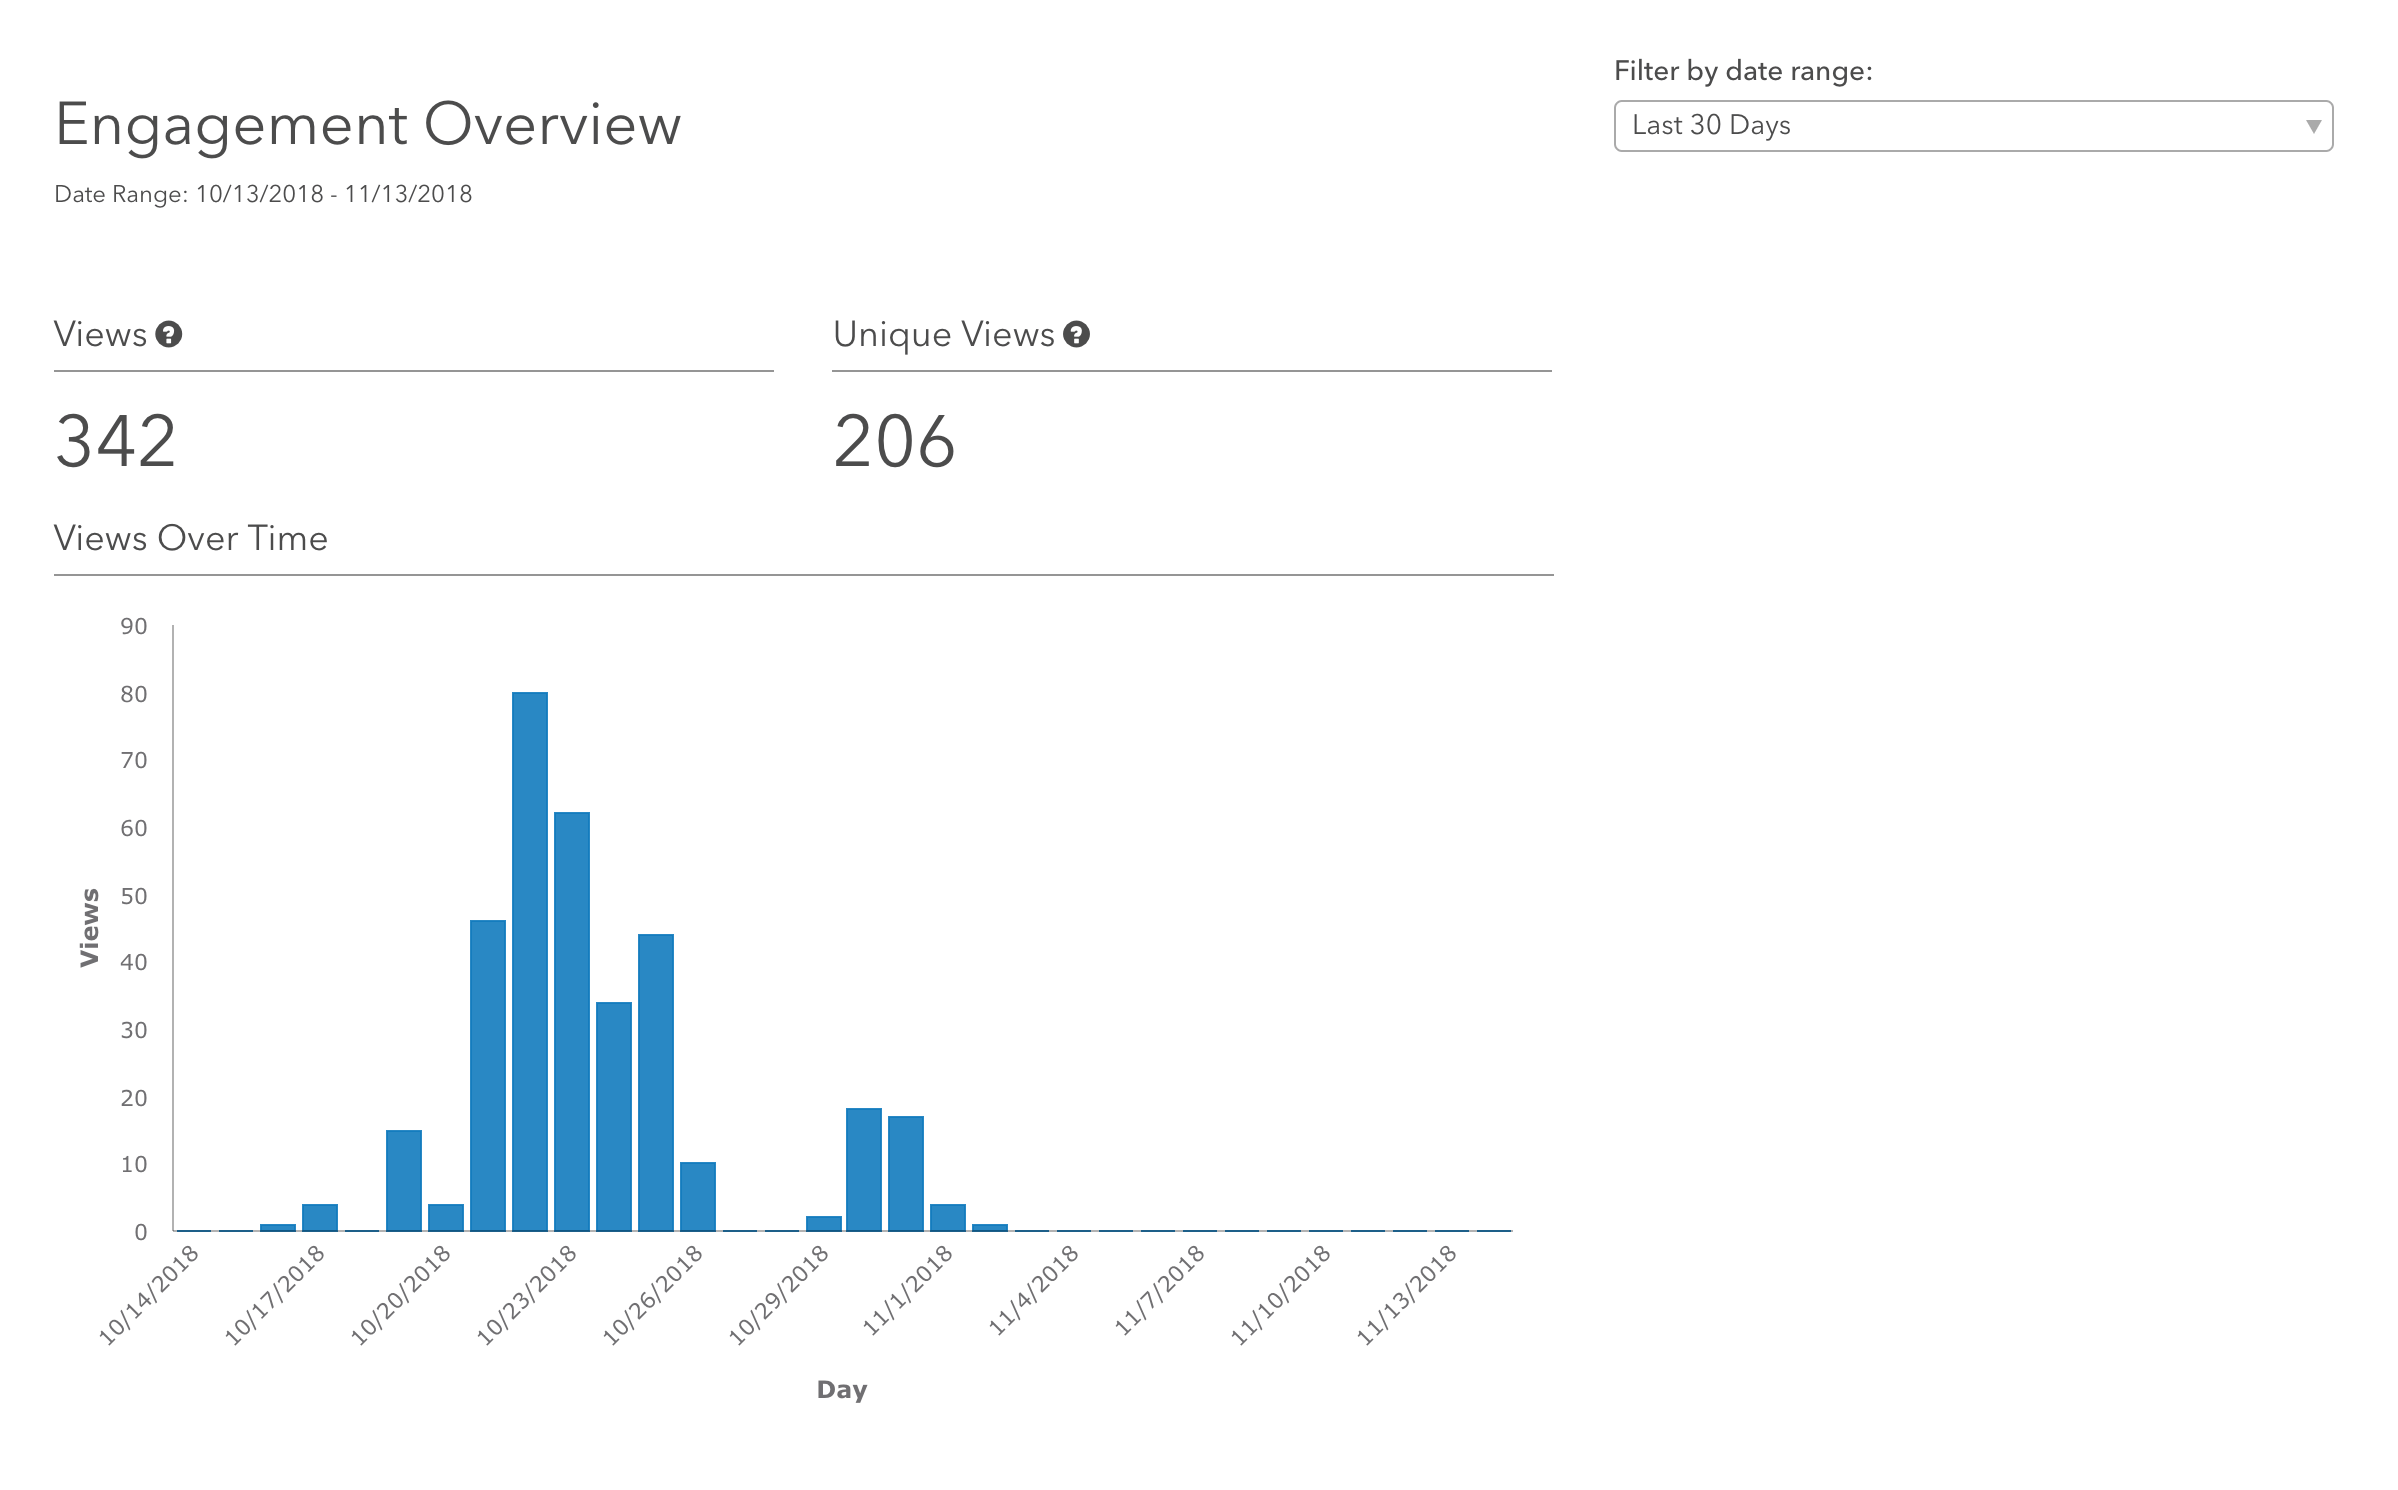 A site's engagement dashboard shows views over time as a bar chart.